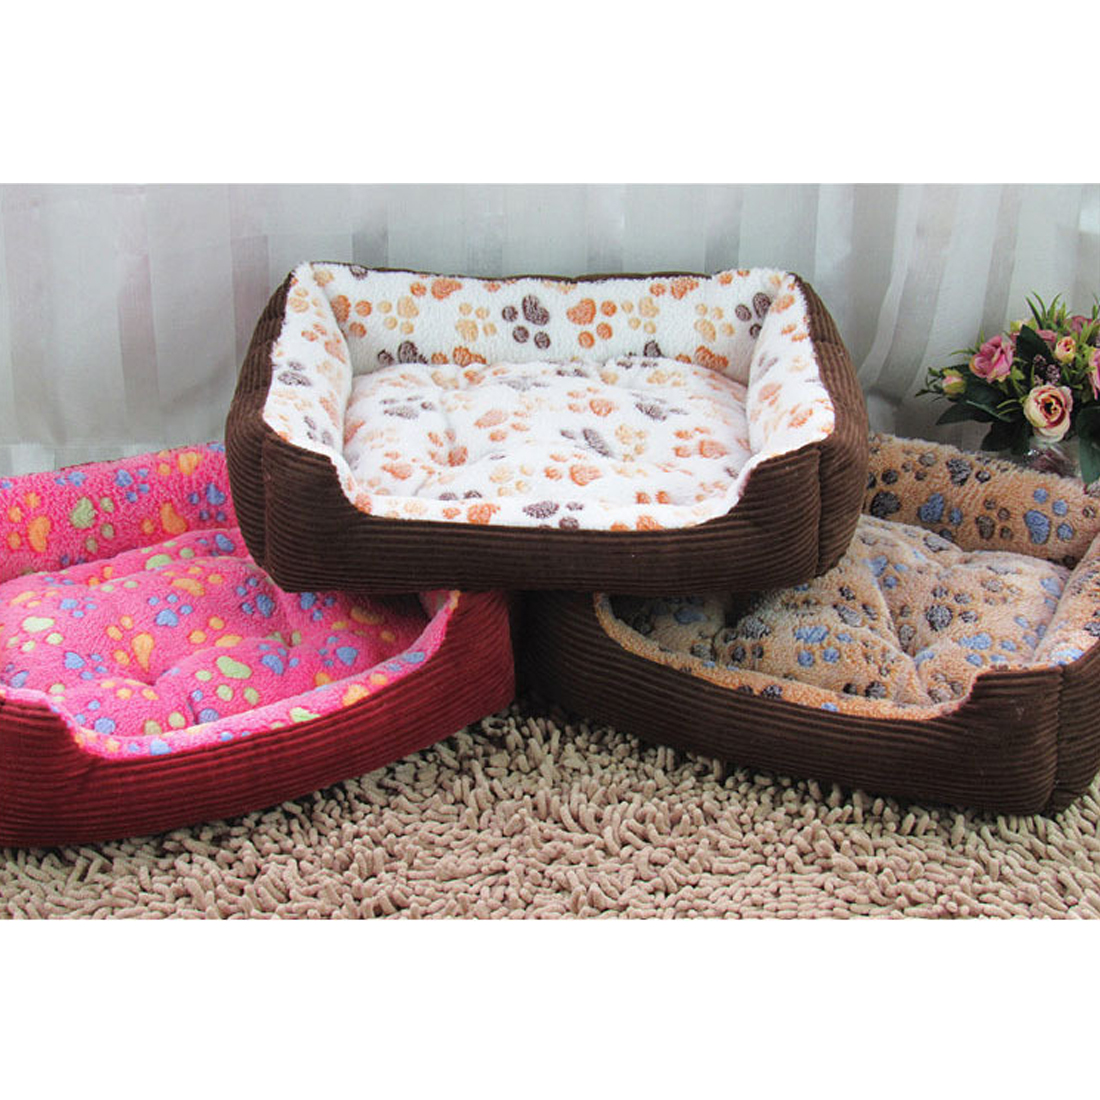 Bed For Dog Cat Corduroy Padded Waterproof Washable Pet House Mat Soft Sofa Kennel Dogs Cats House Dog beds For Large dogs image